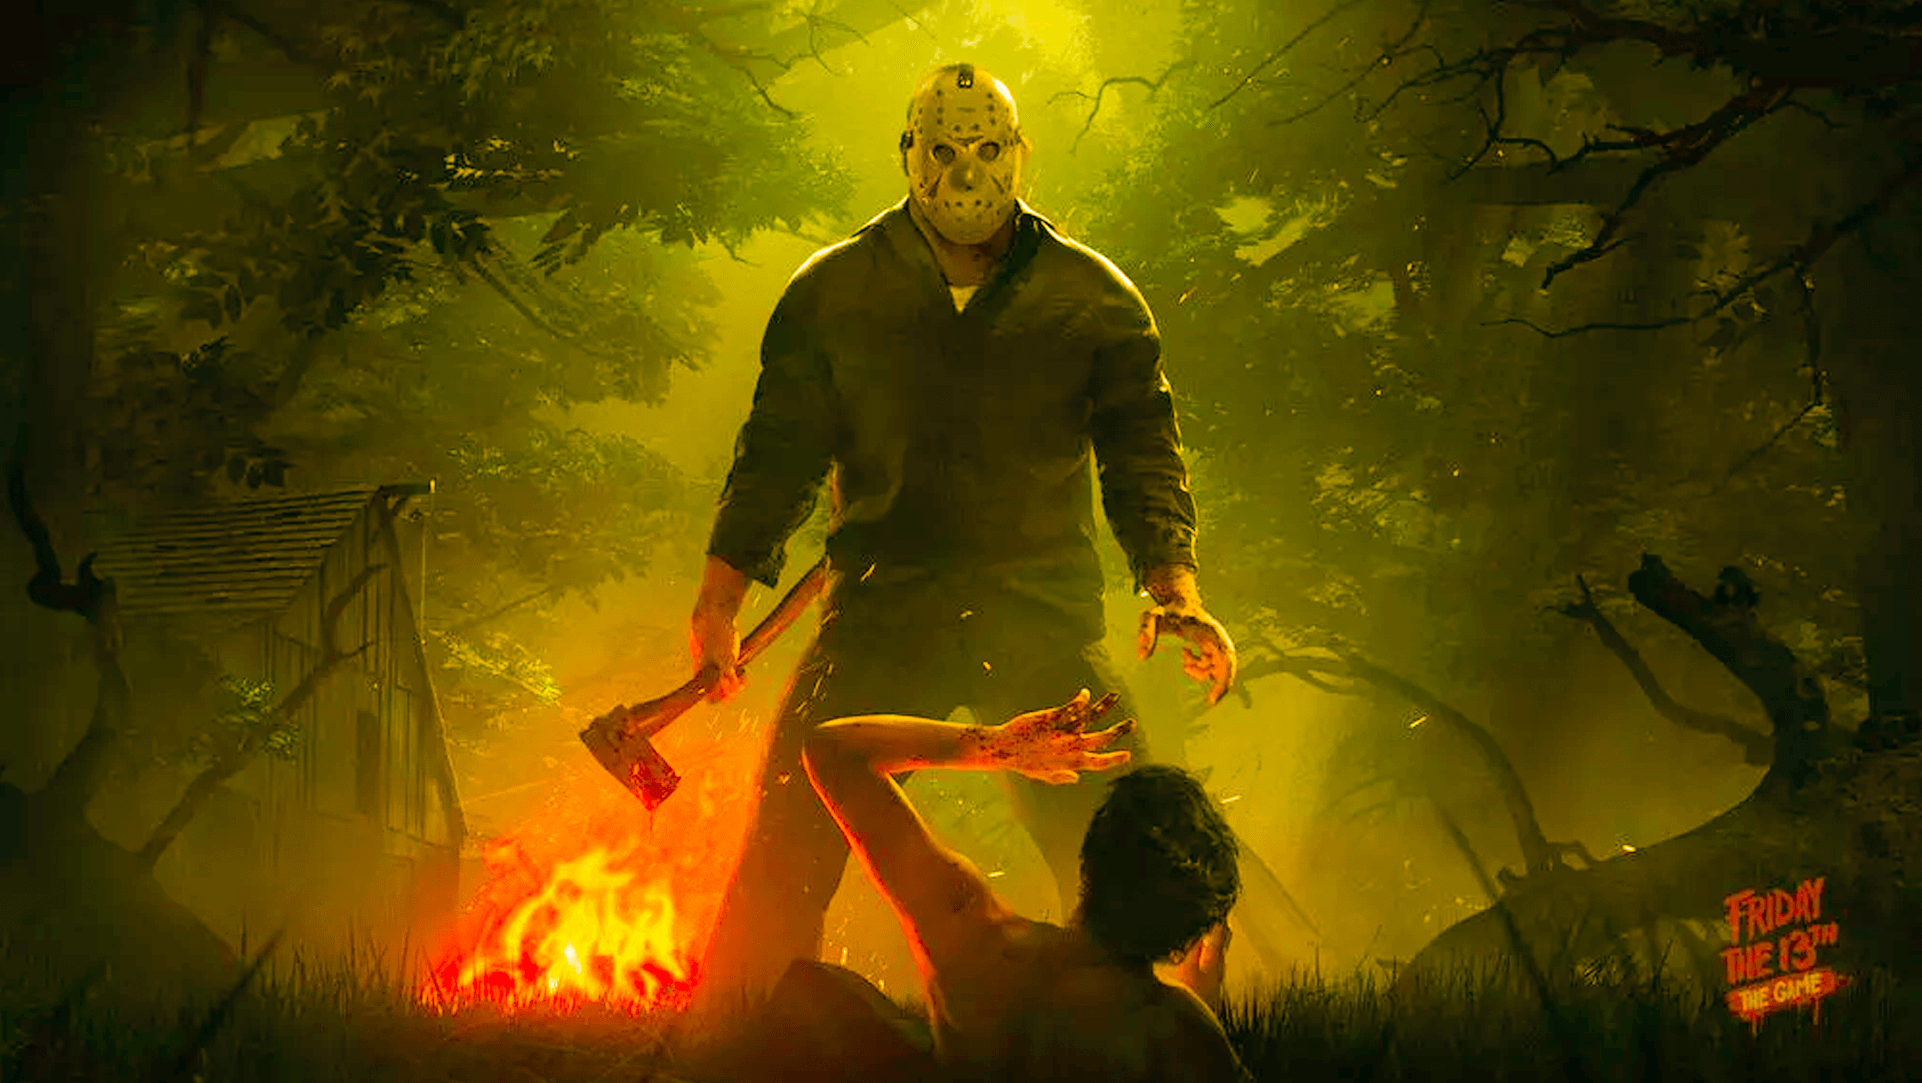 Friday The 13th Wallpapers High Quality All Hd Wallpapers